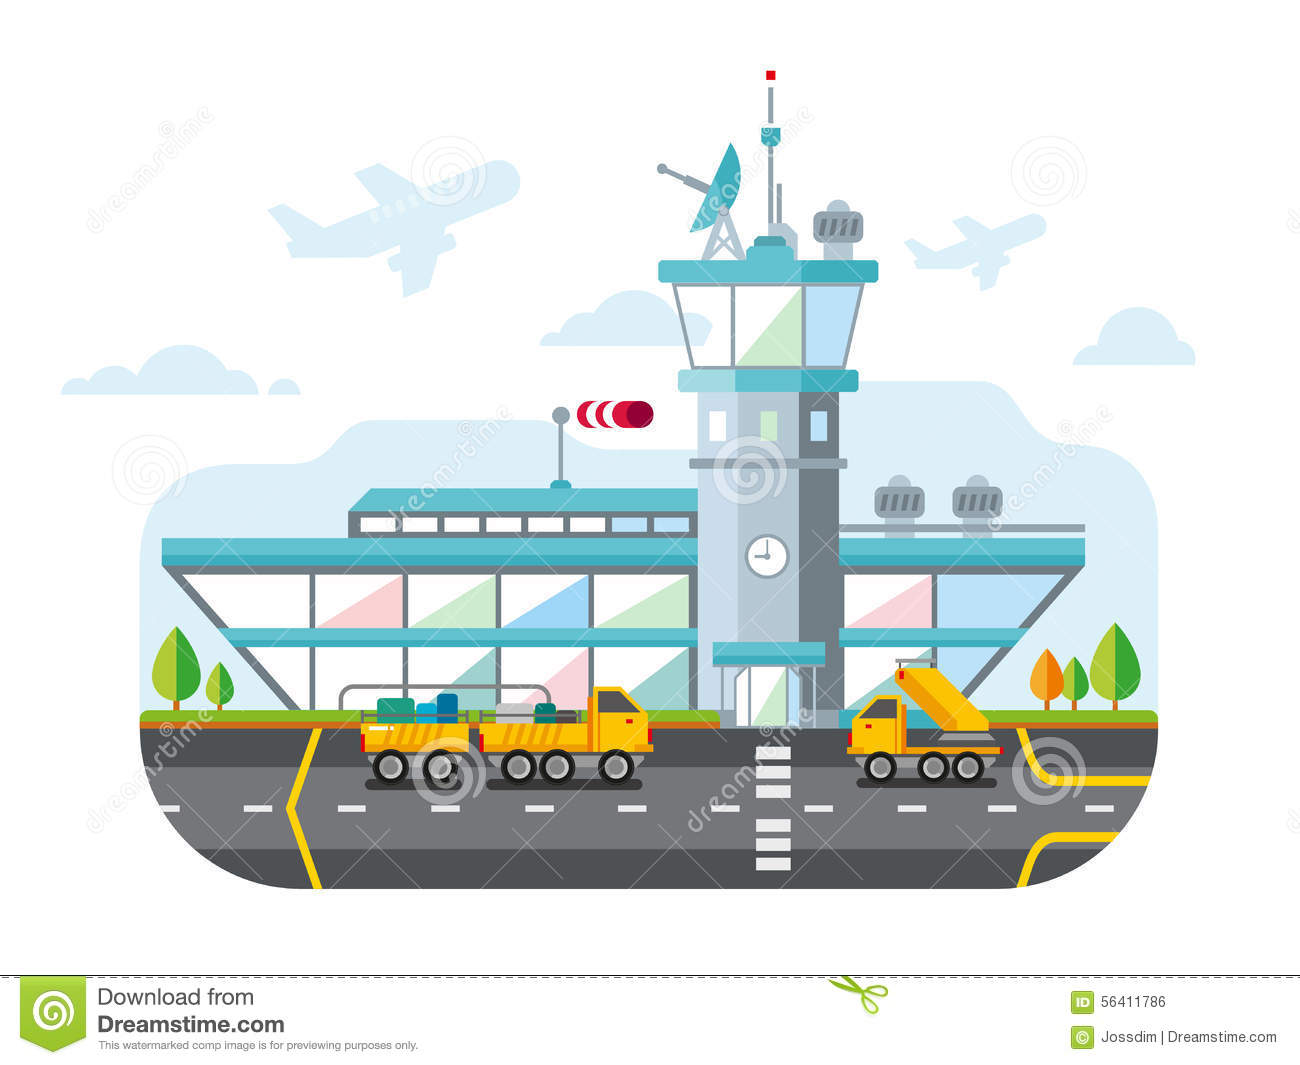 airport gate clipart - photo #5